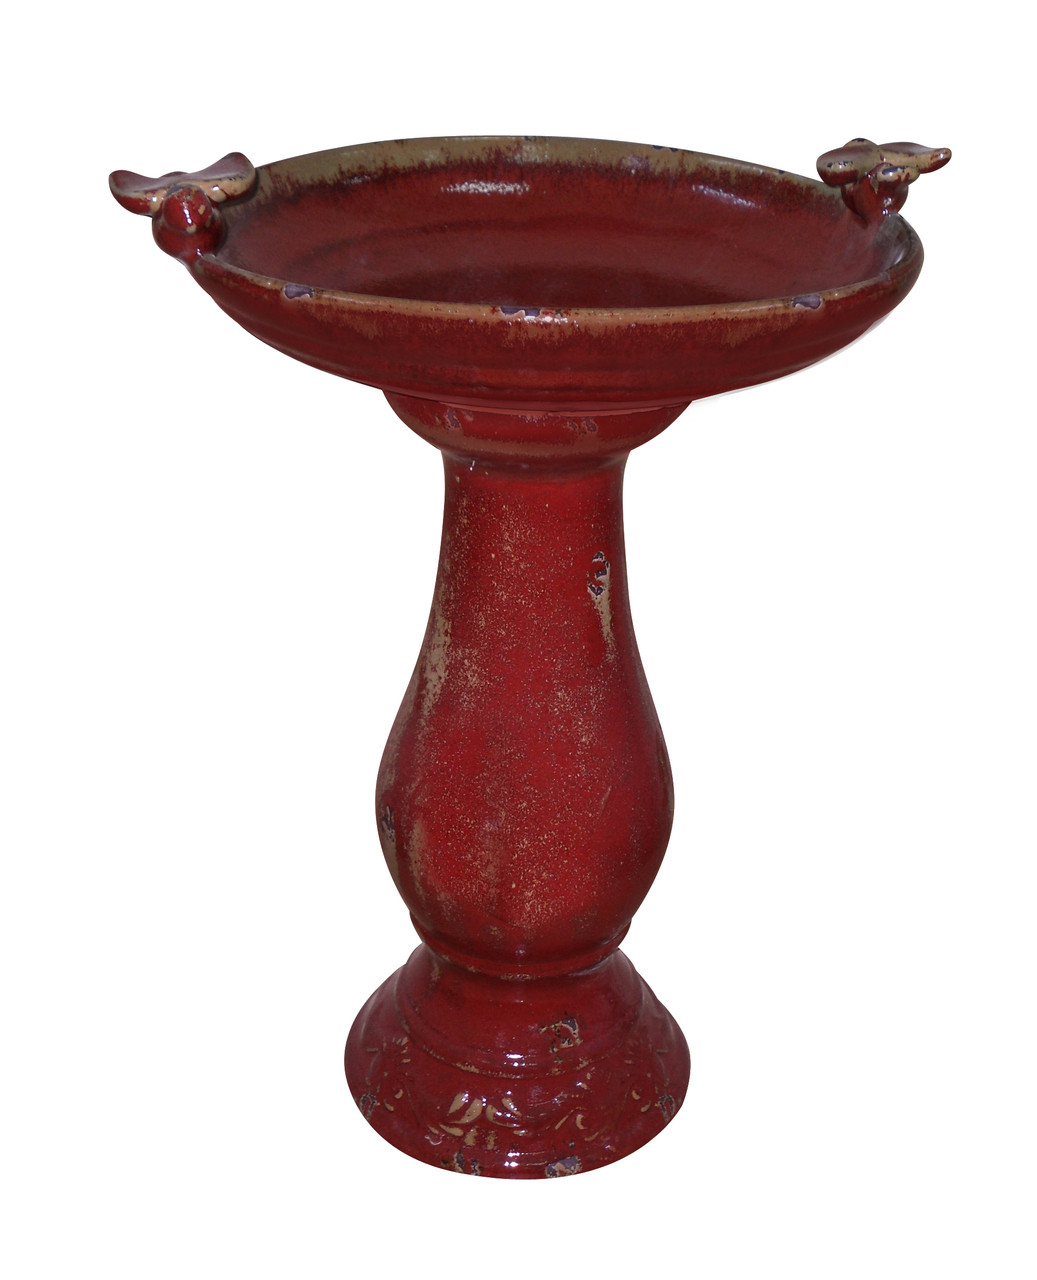 Antique Ceramic Bird Bath Birds Misc Image 380